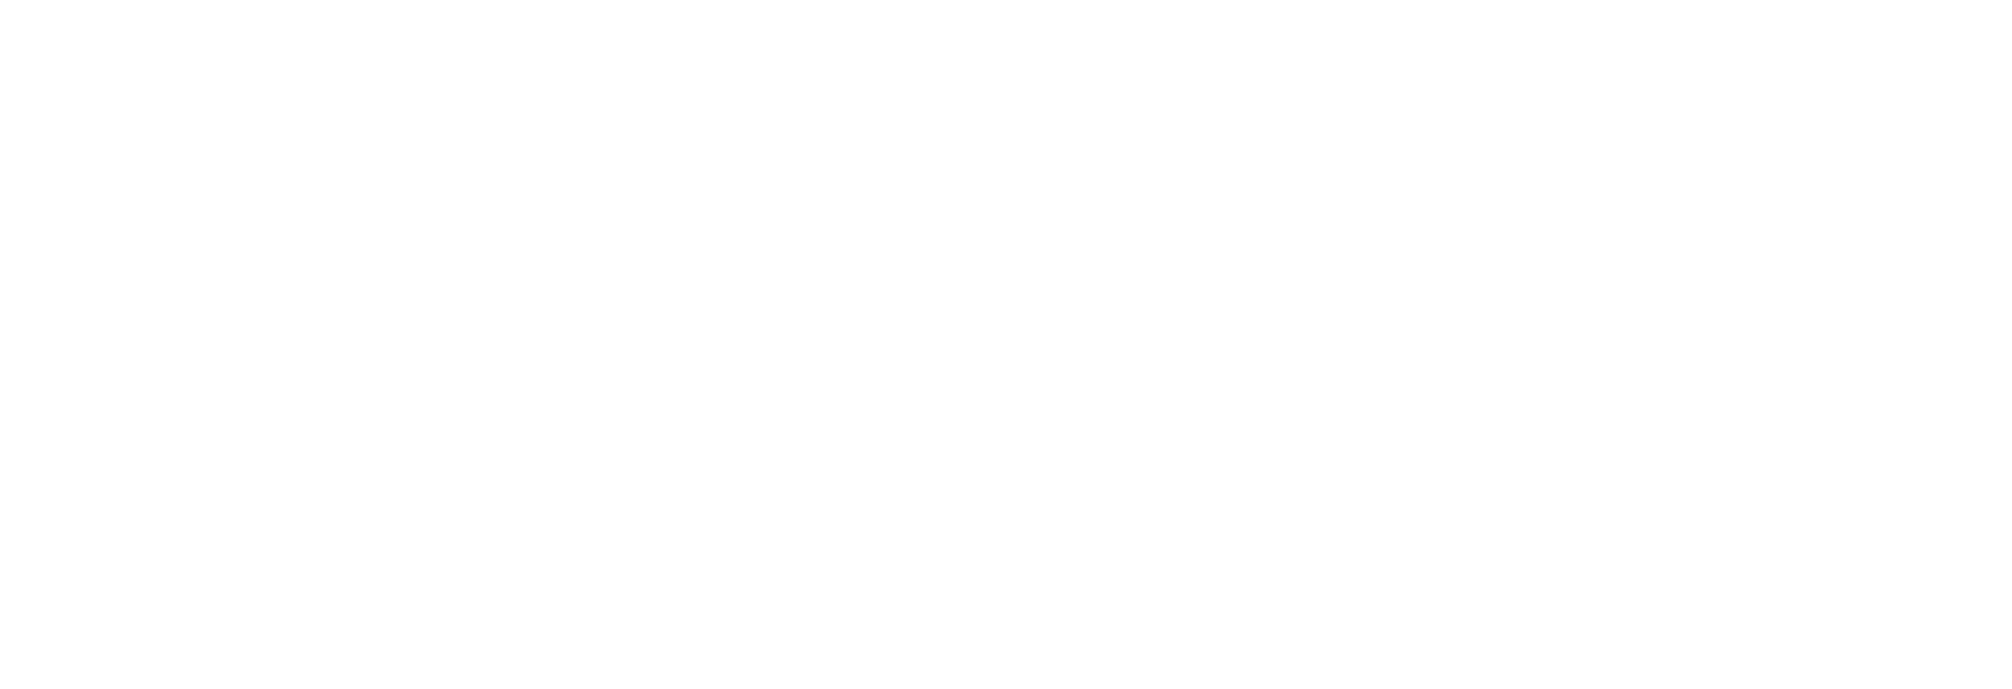 Le forum Canadien sur l'internet - Toronto, ON | Le 27 Février 2019